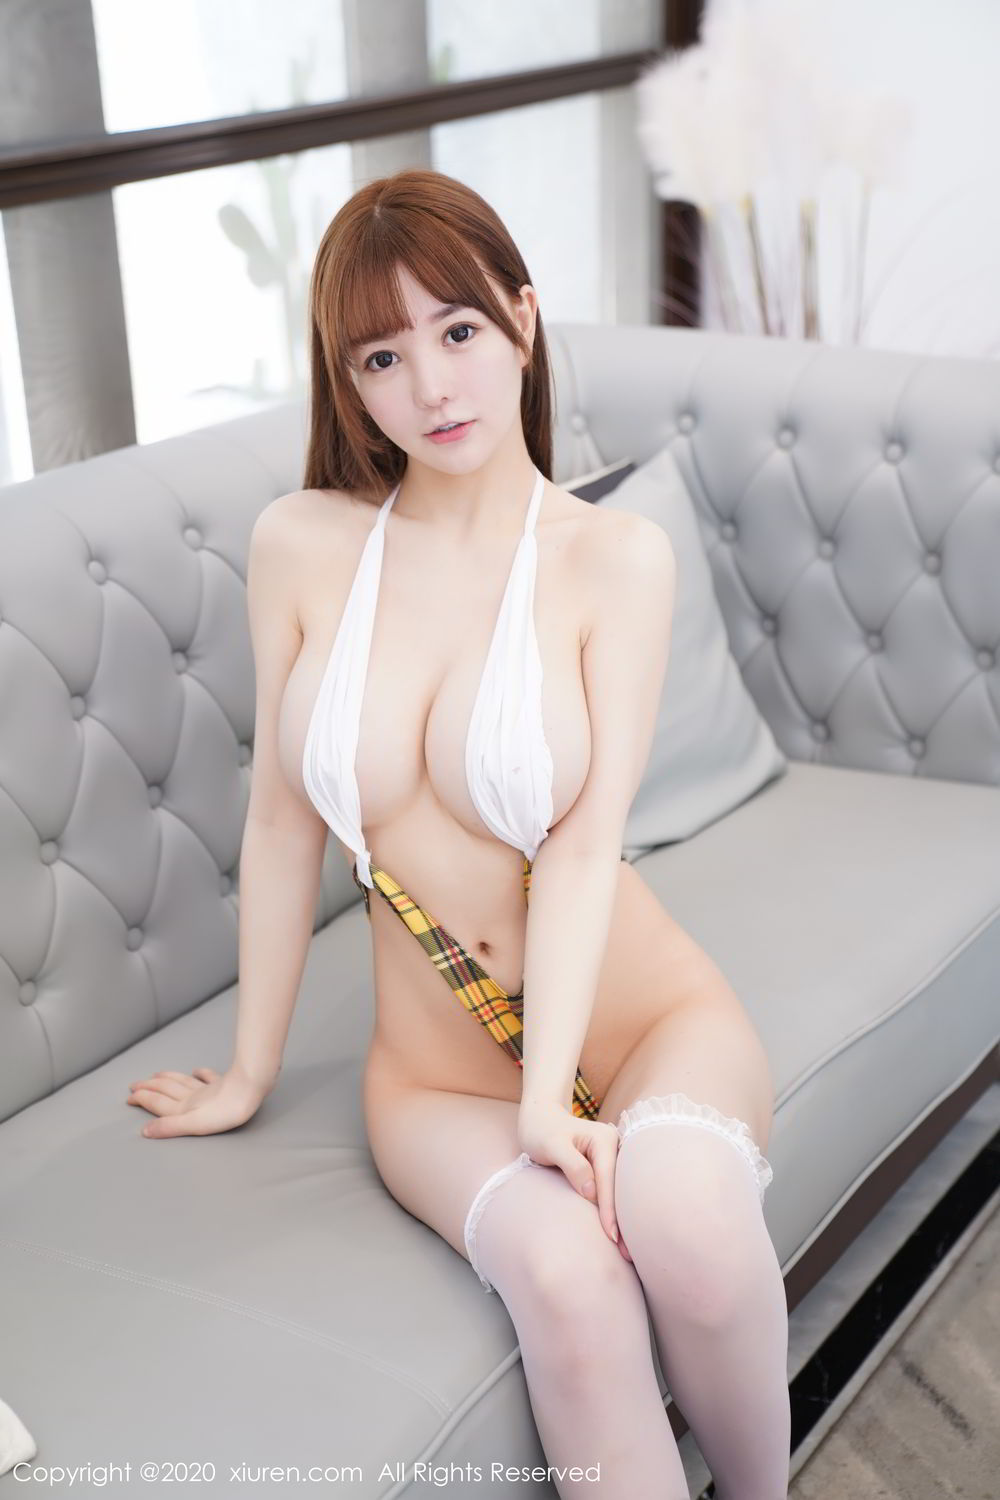 [XiuRen] Vol.2115 Uu Jiang 40P, Baby Face Big Boobs, Cute, UU Jiang, Xiuren